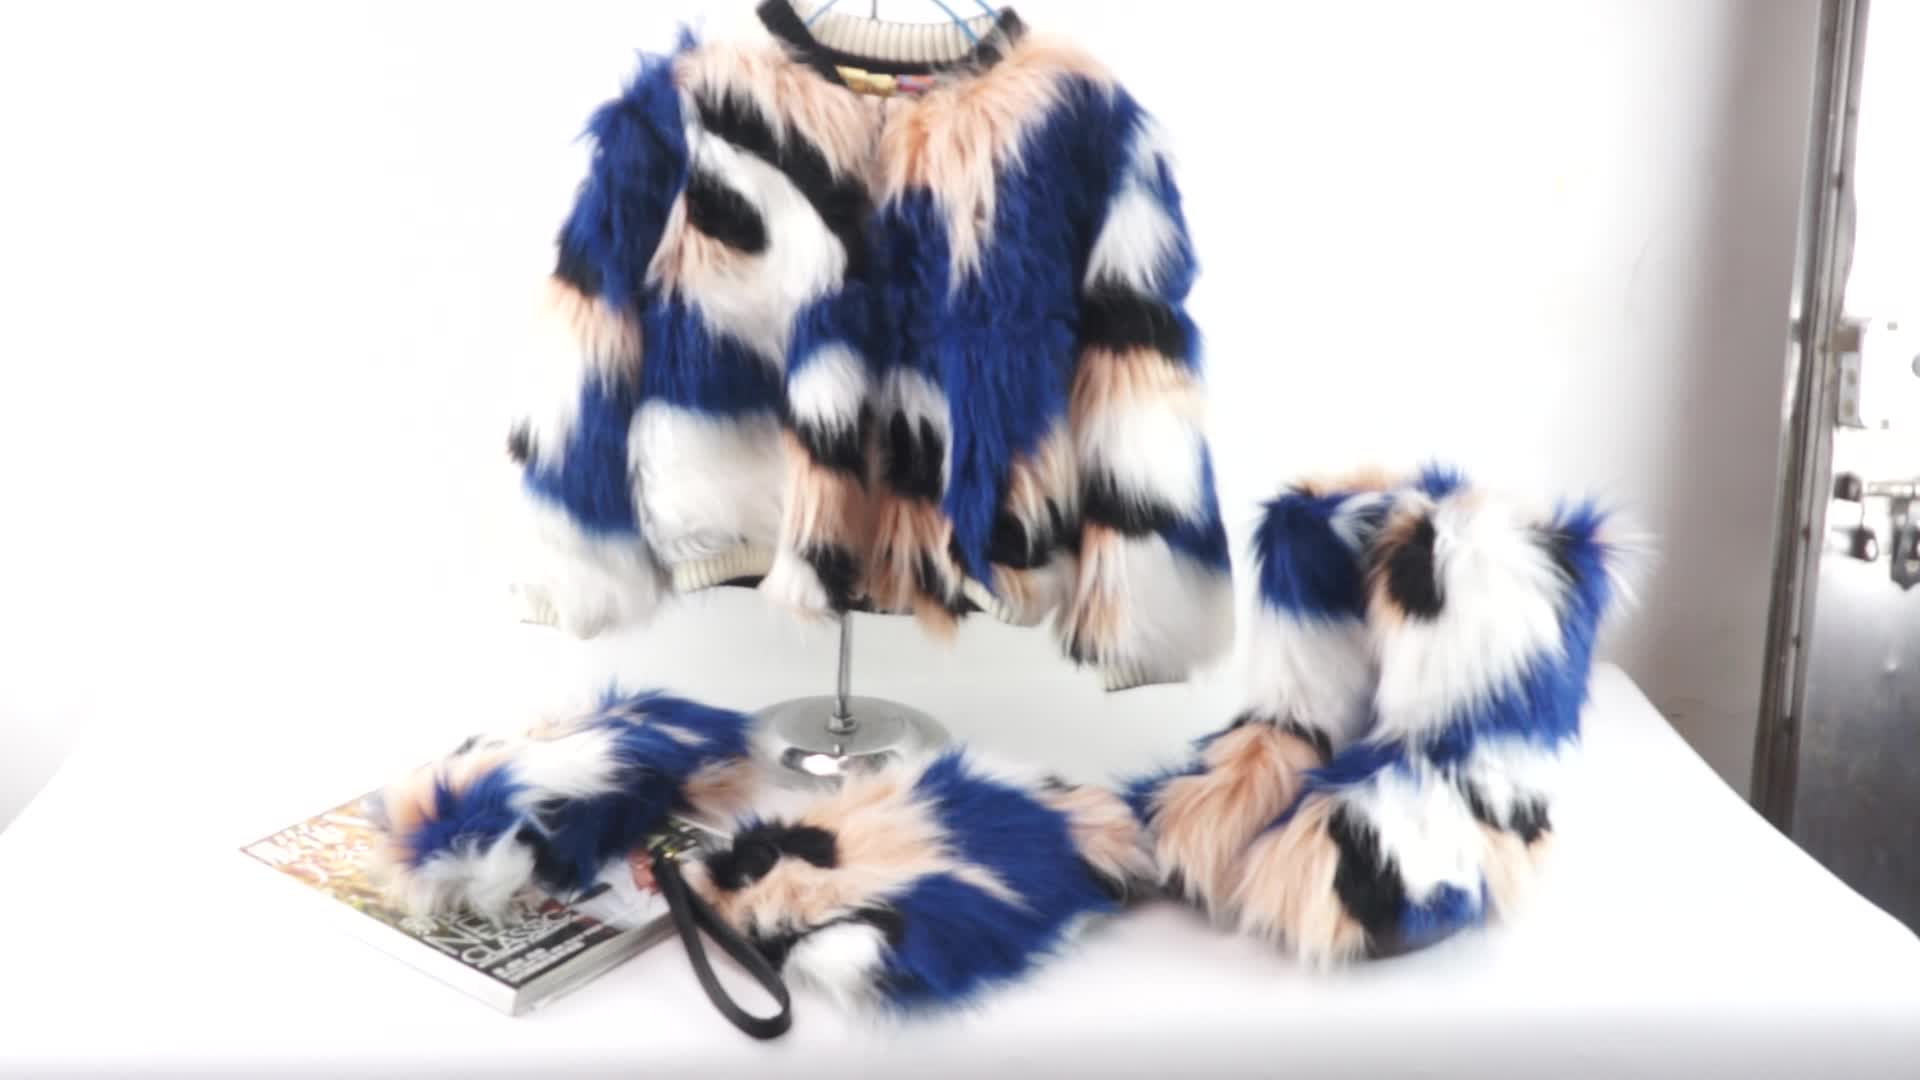 Winter fashion  Fake Fur boots with  colorful headband match lady handbags as set